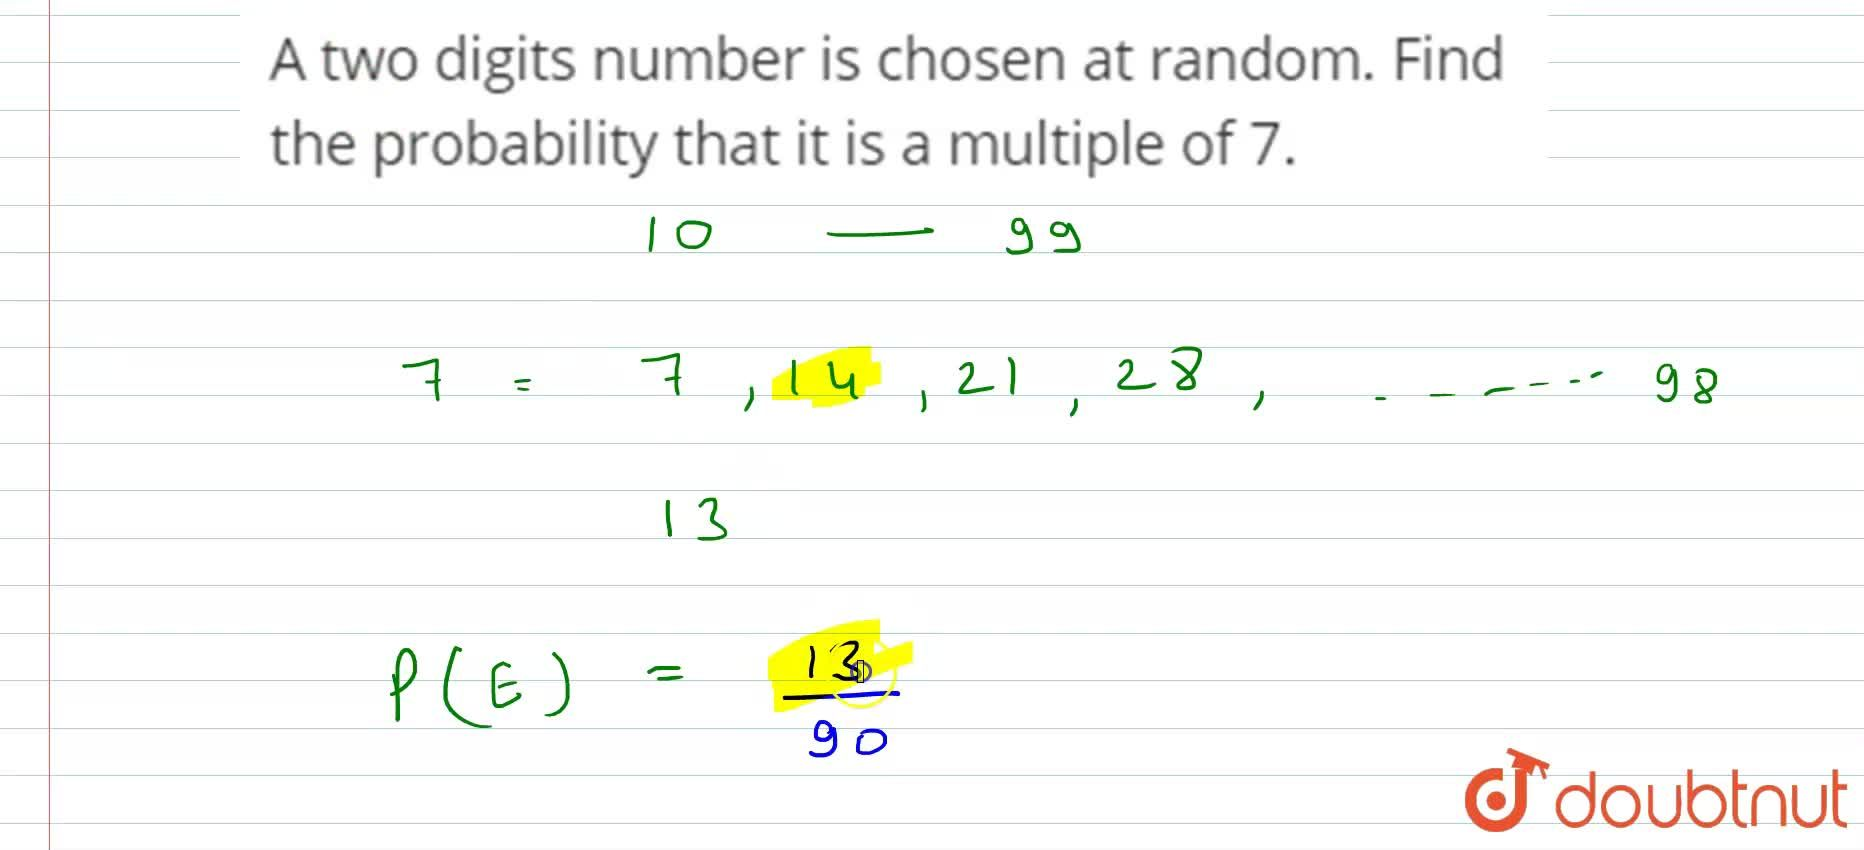 Solution for A two digits number is chosen at random. Find the